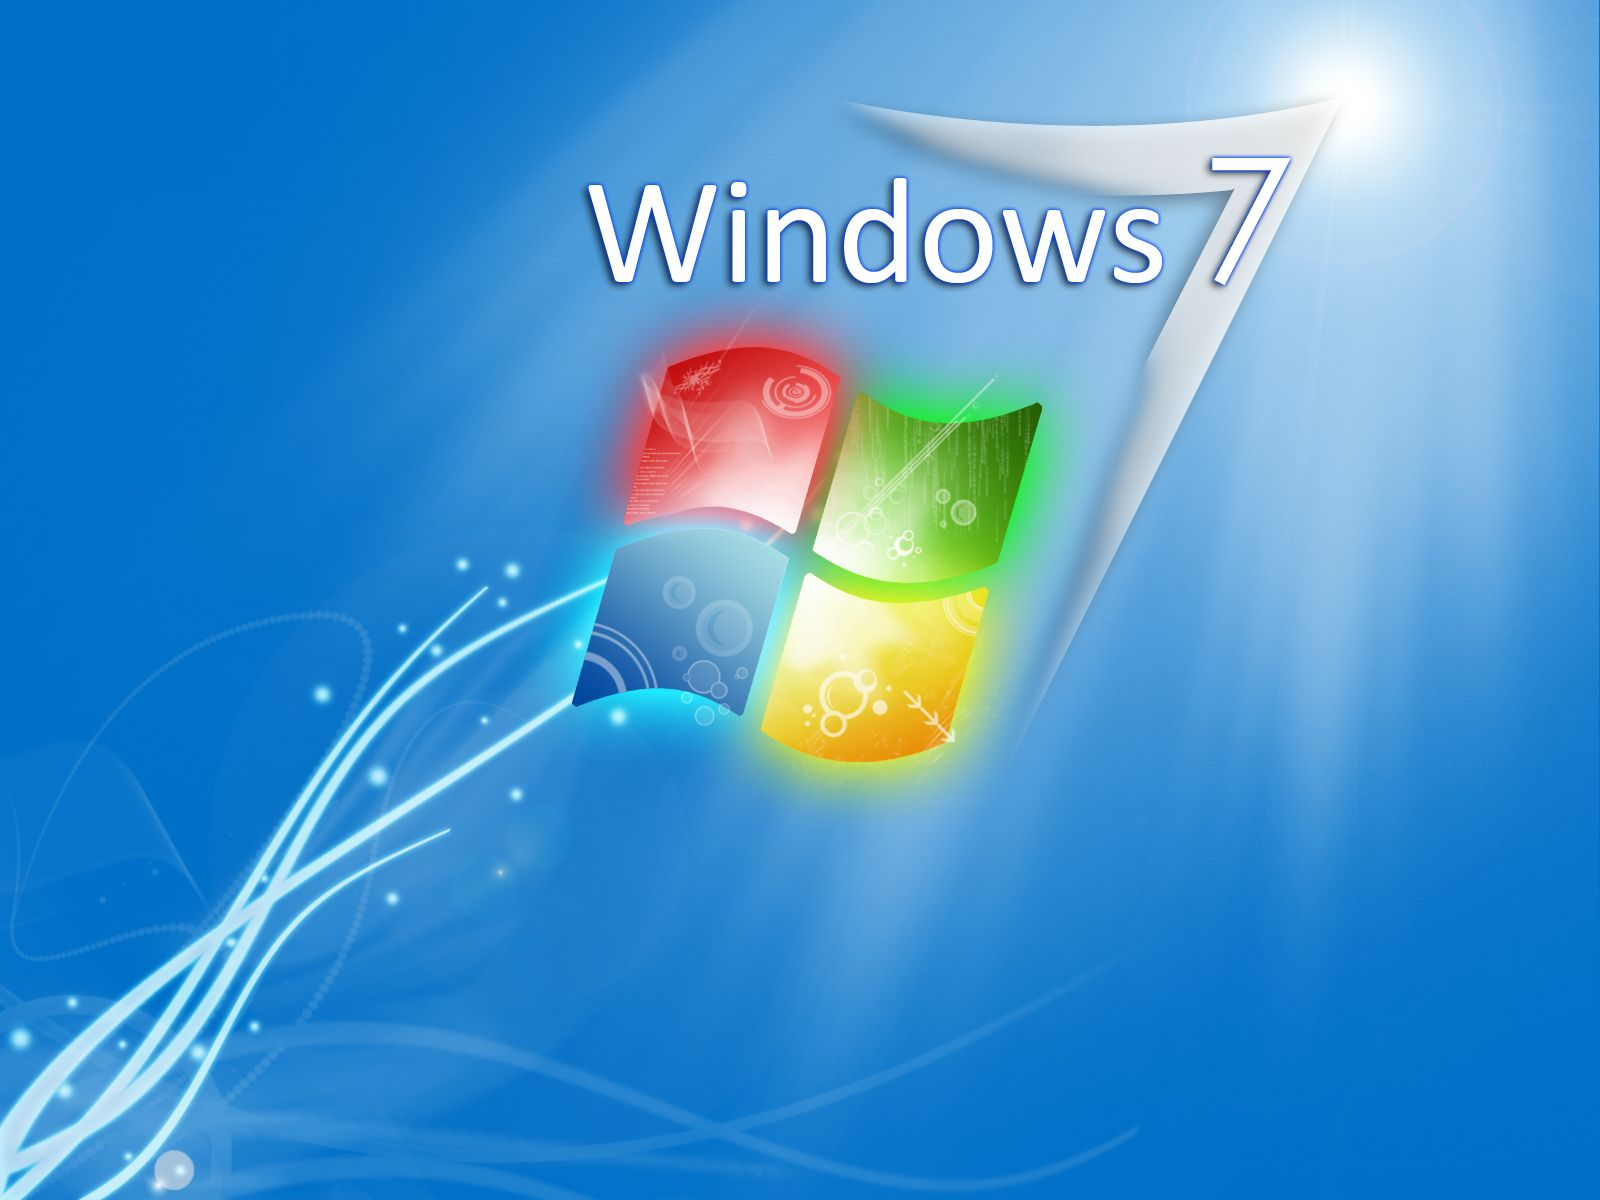 Download The Free Desktop Wallpaper Of Windows 7 Wallpapers Hd Win